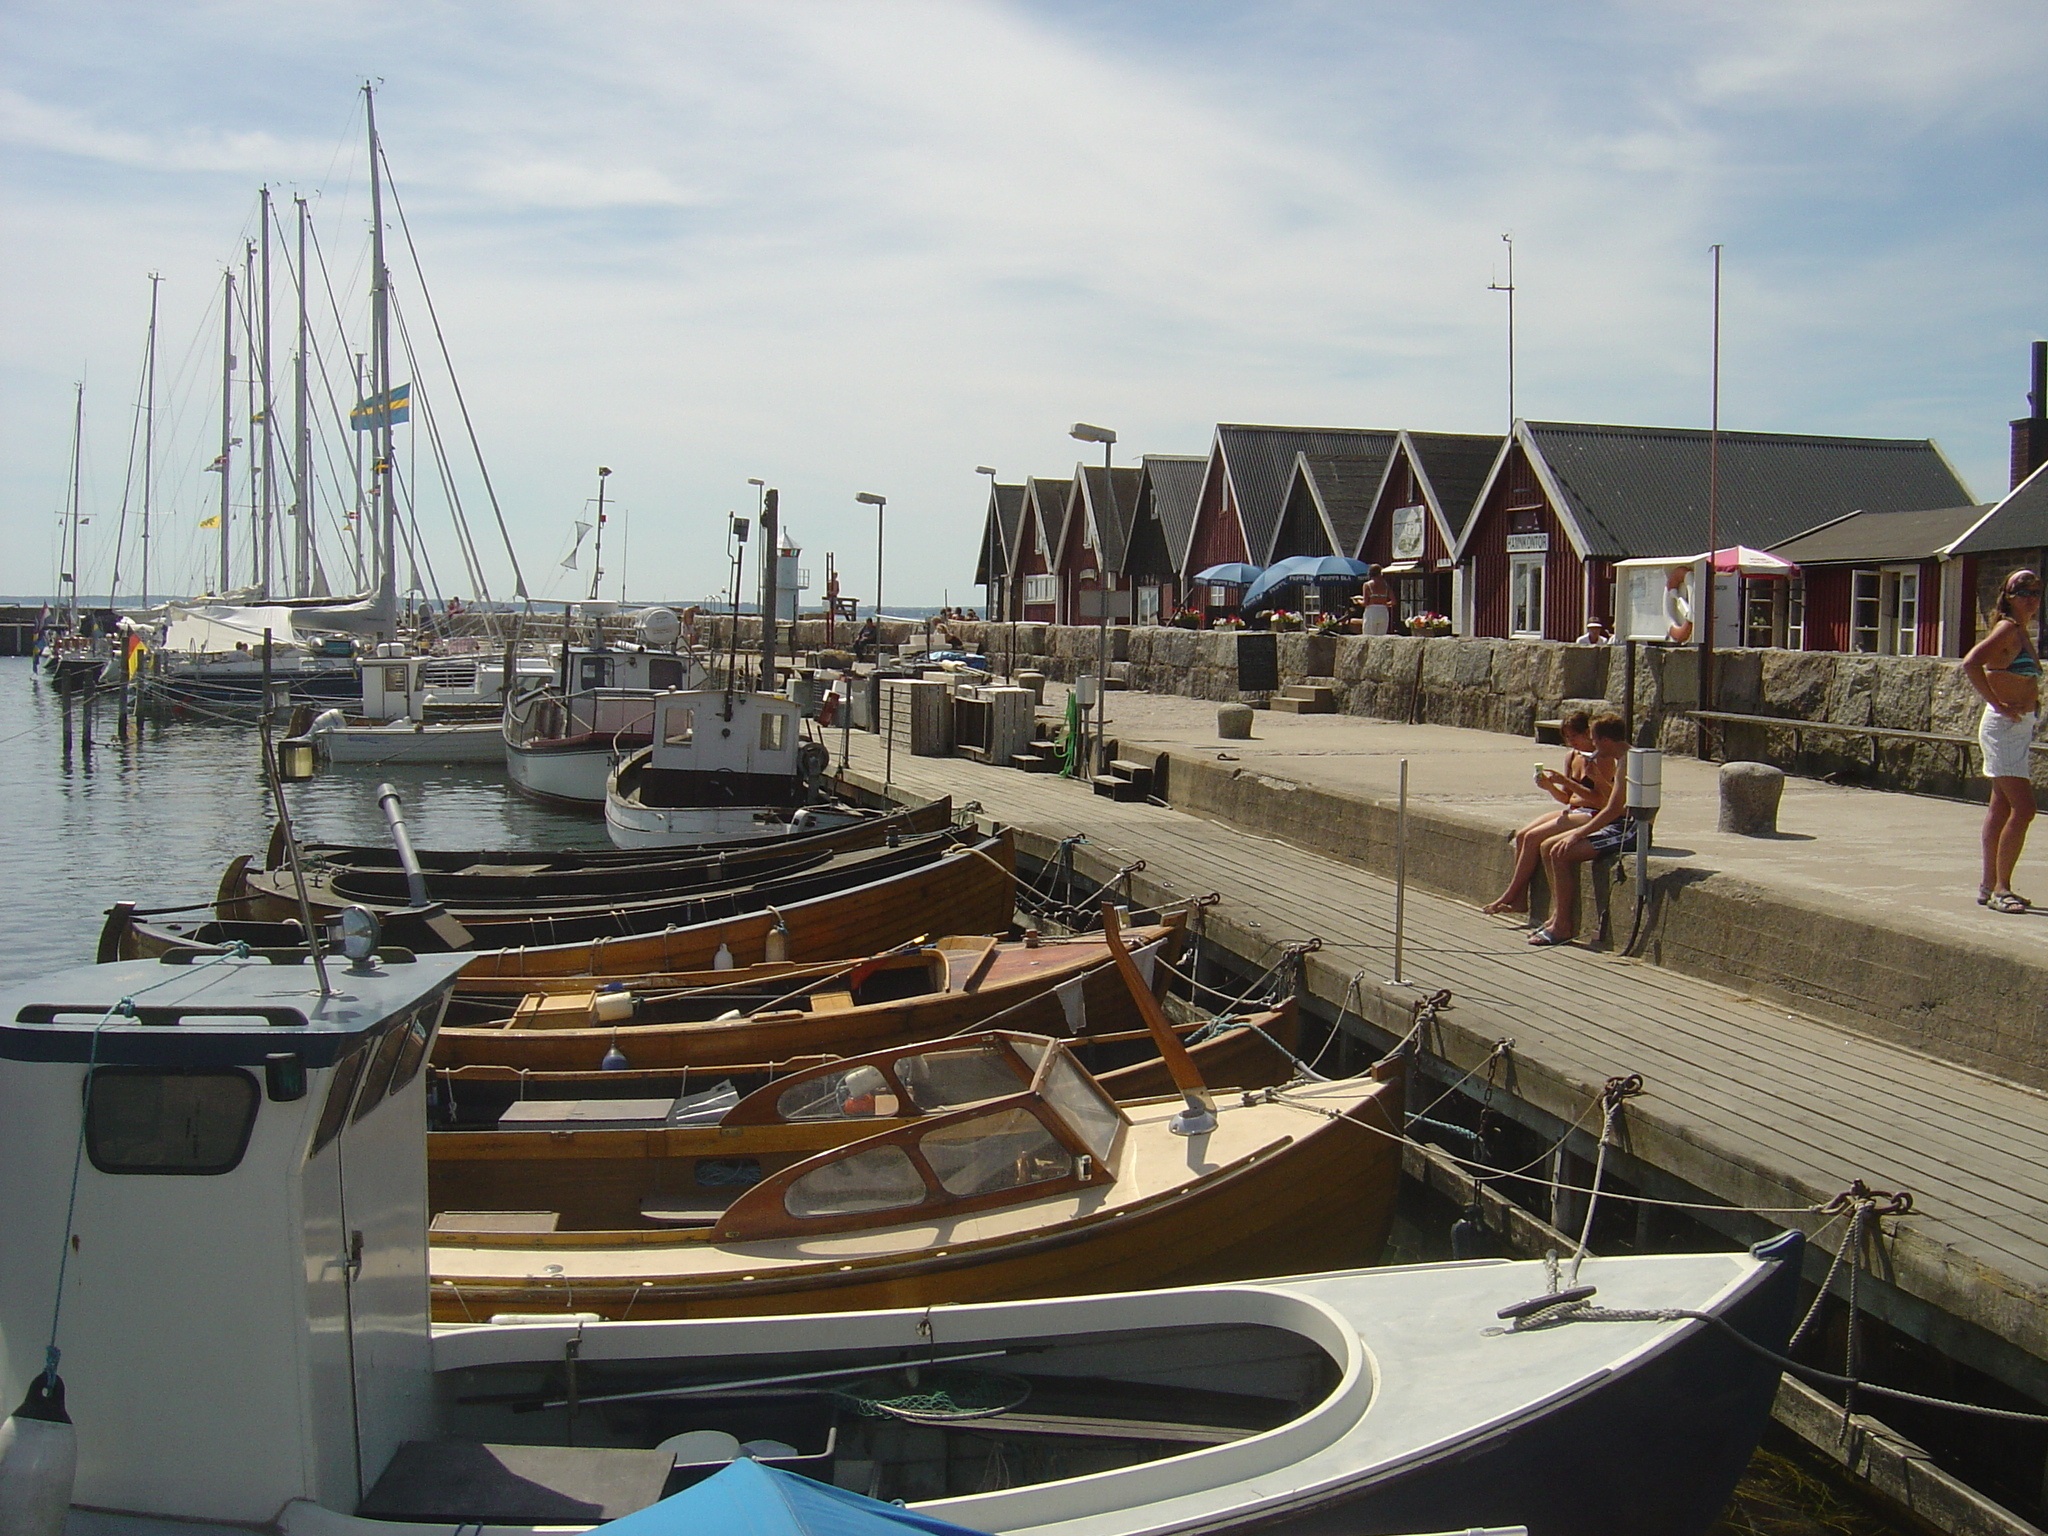 Boating images Swedish Harbour HD wallpaper and background photos ...